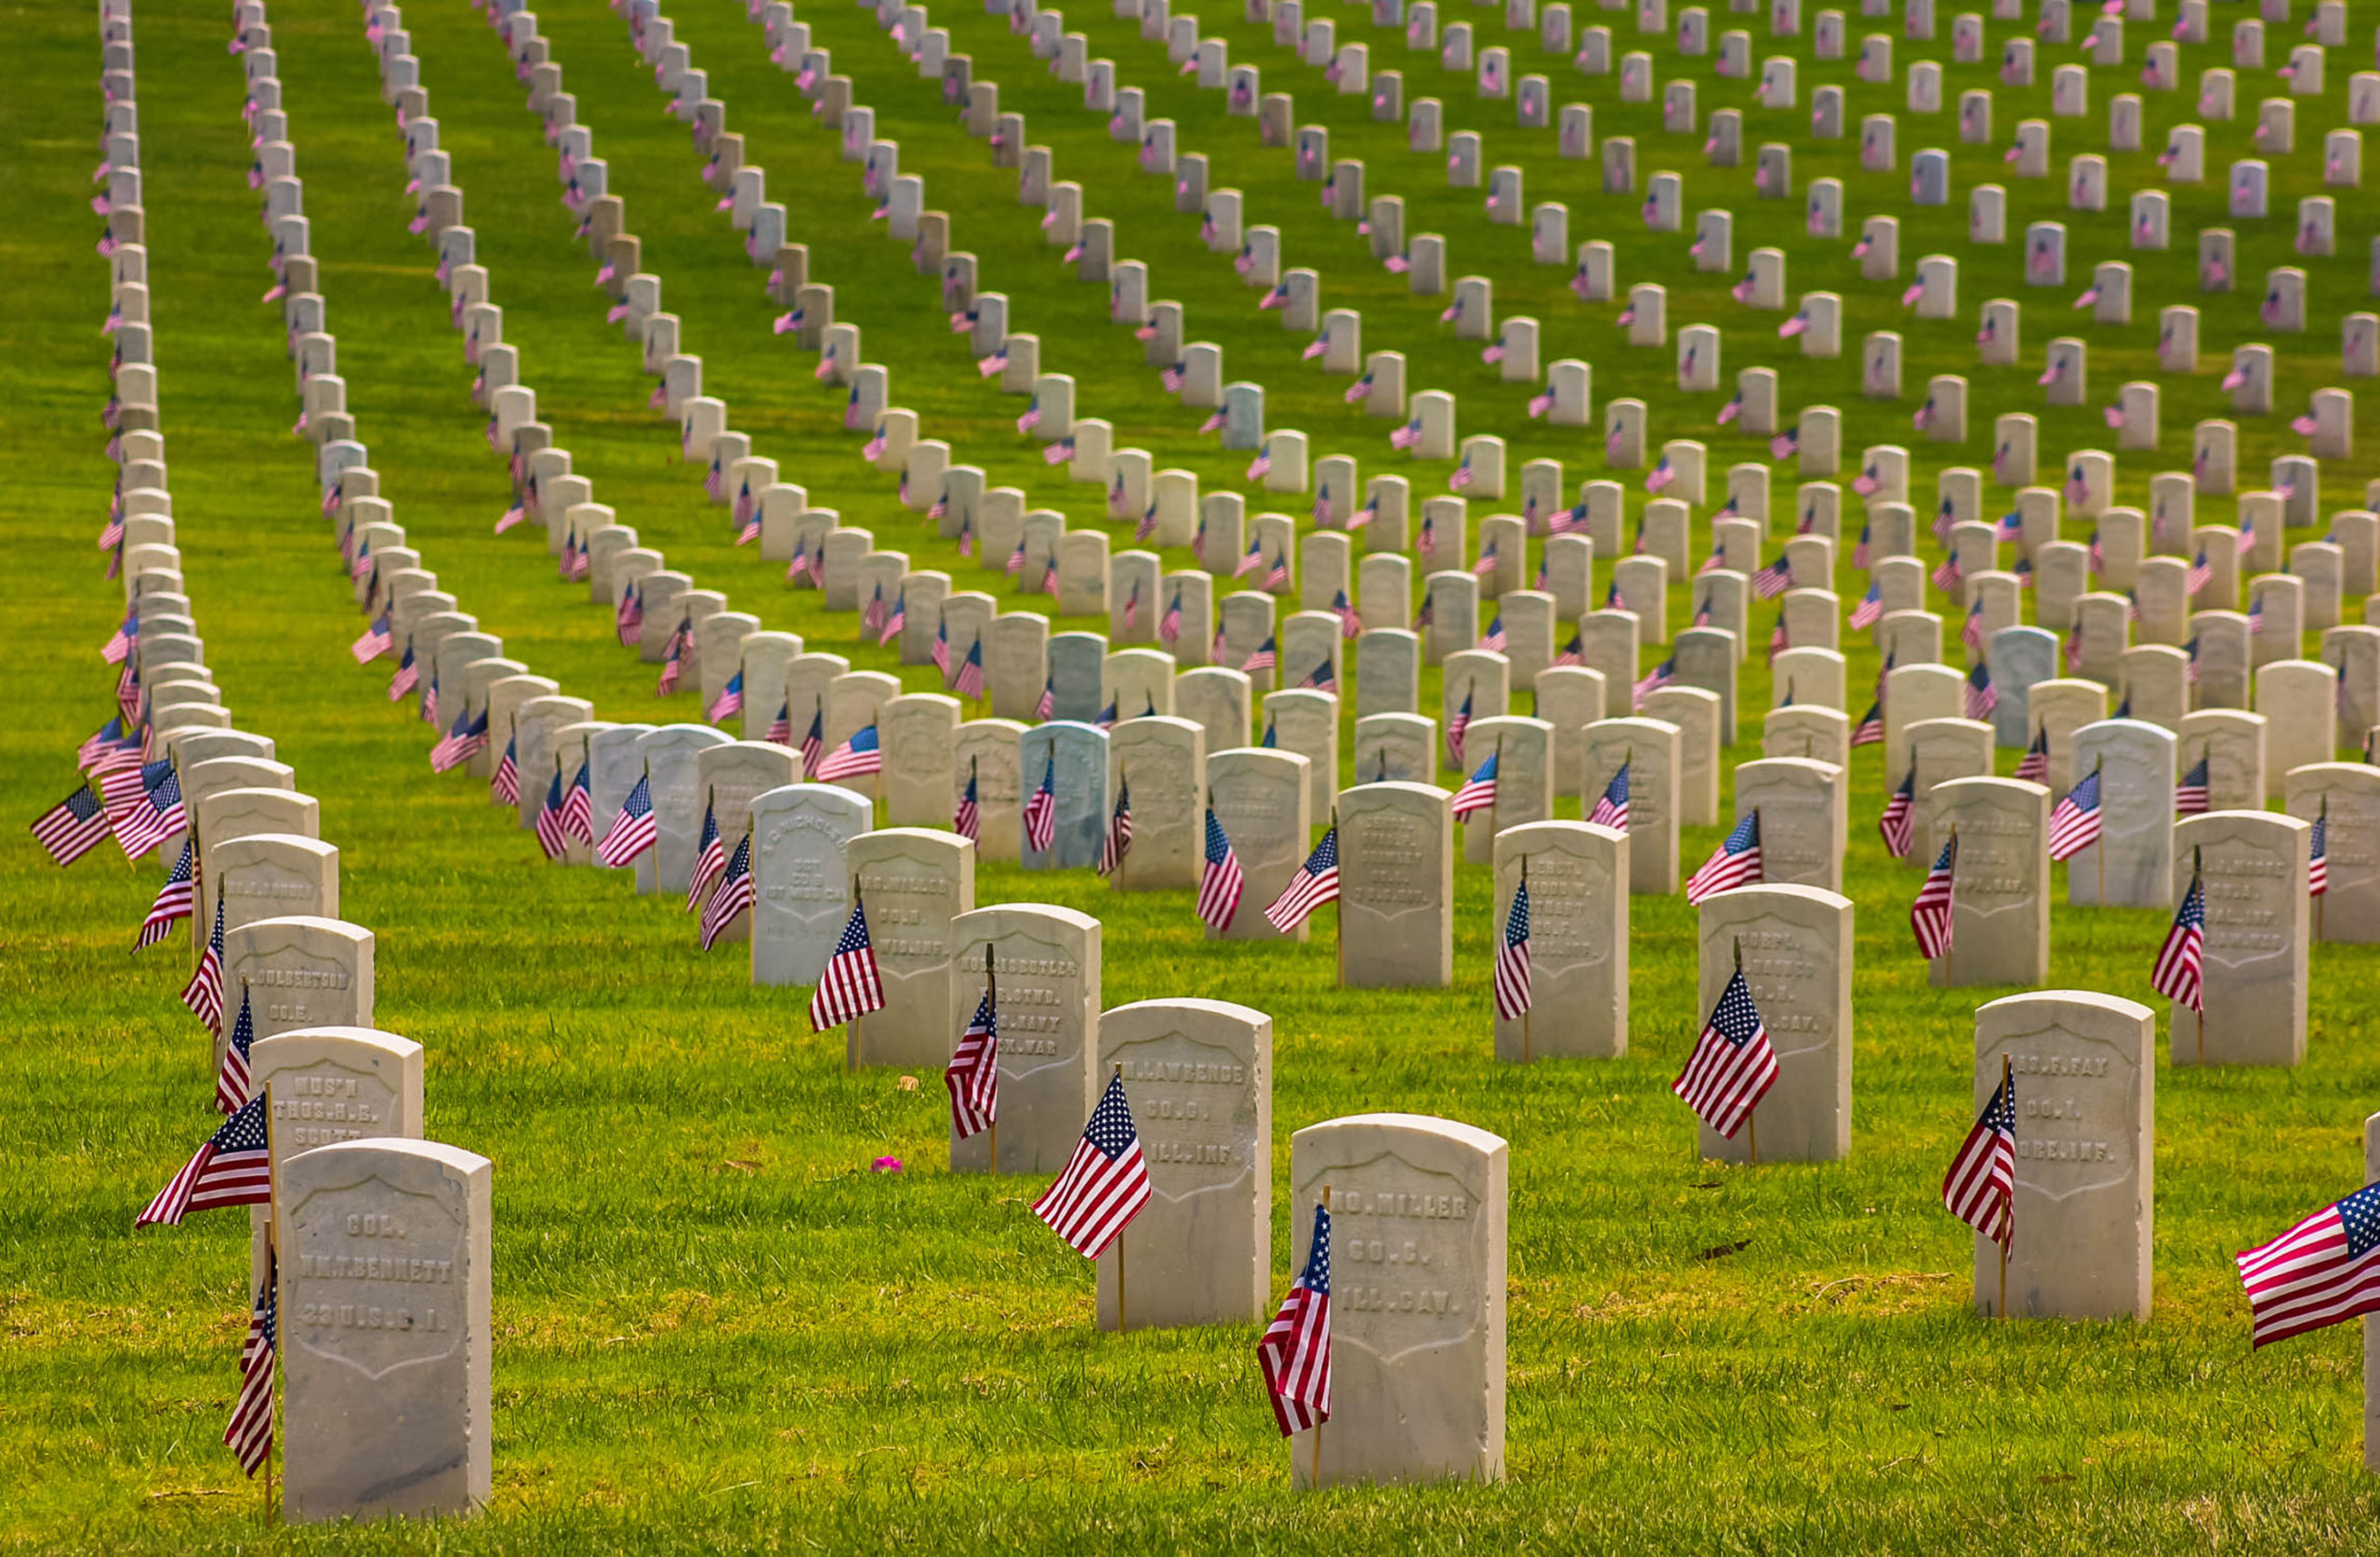 Boy Scouts banned from planting American flags on veterans' graves for Memorial Day due to coronavirus. #MemorialDay #BoyScouts